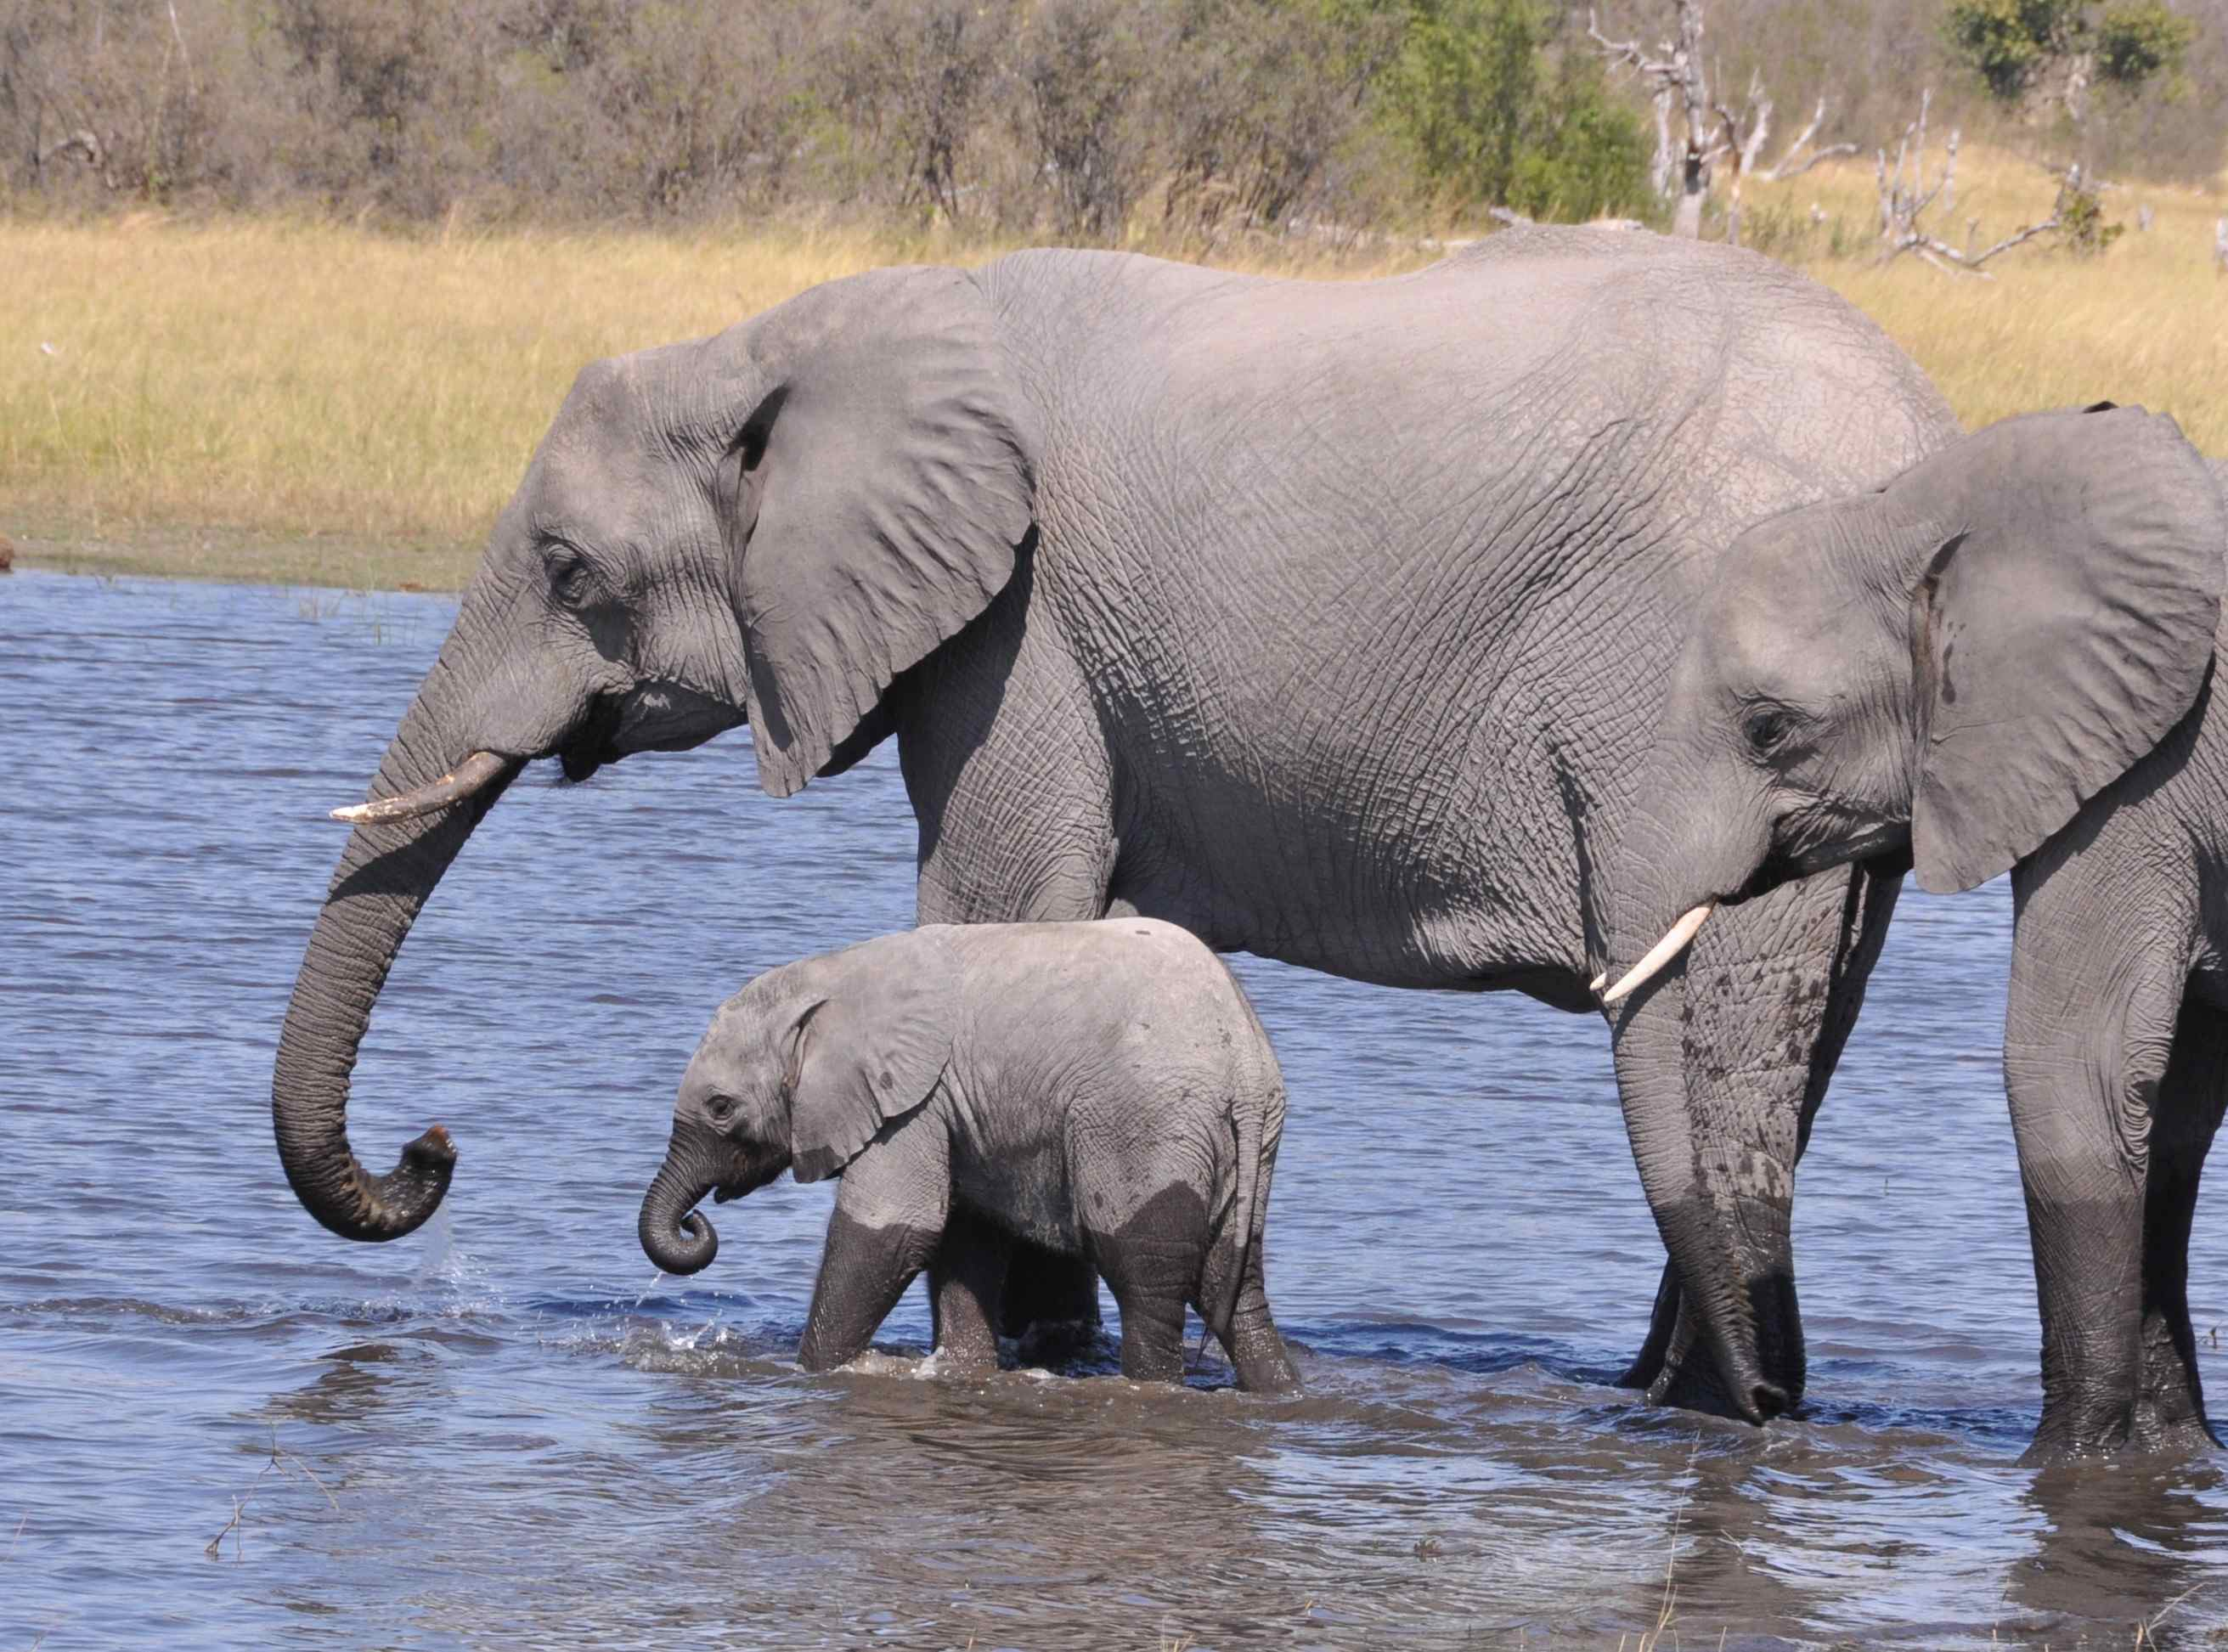 Cute and cuddly baby elephants marion e lane - Cute elephant pictures ...